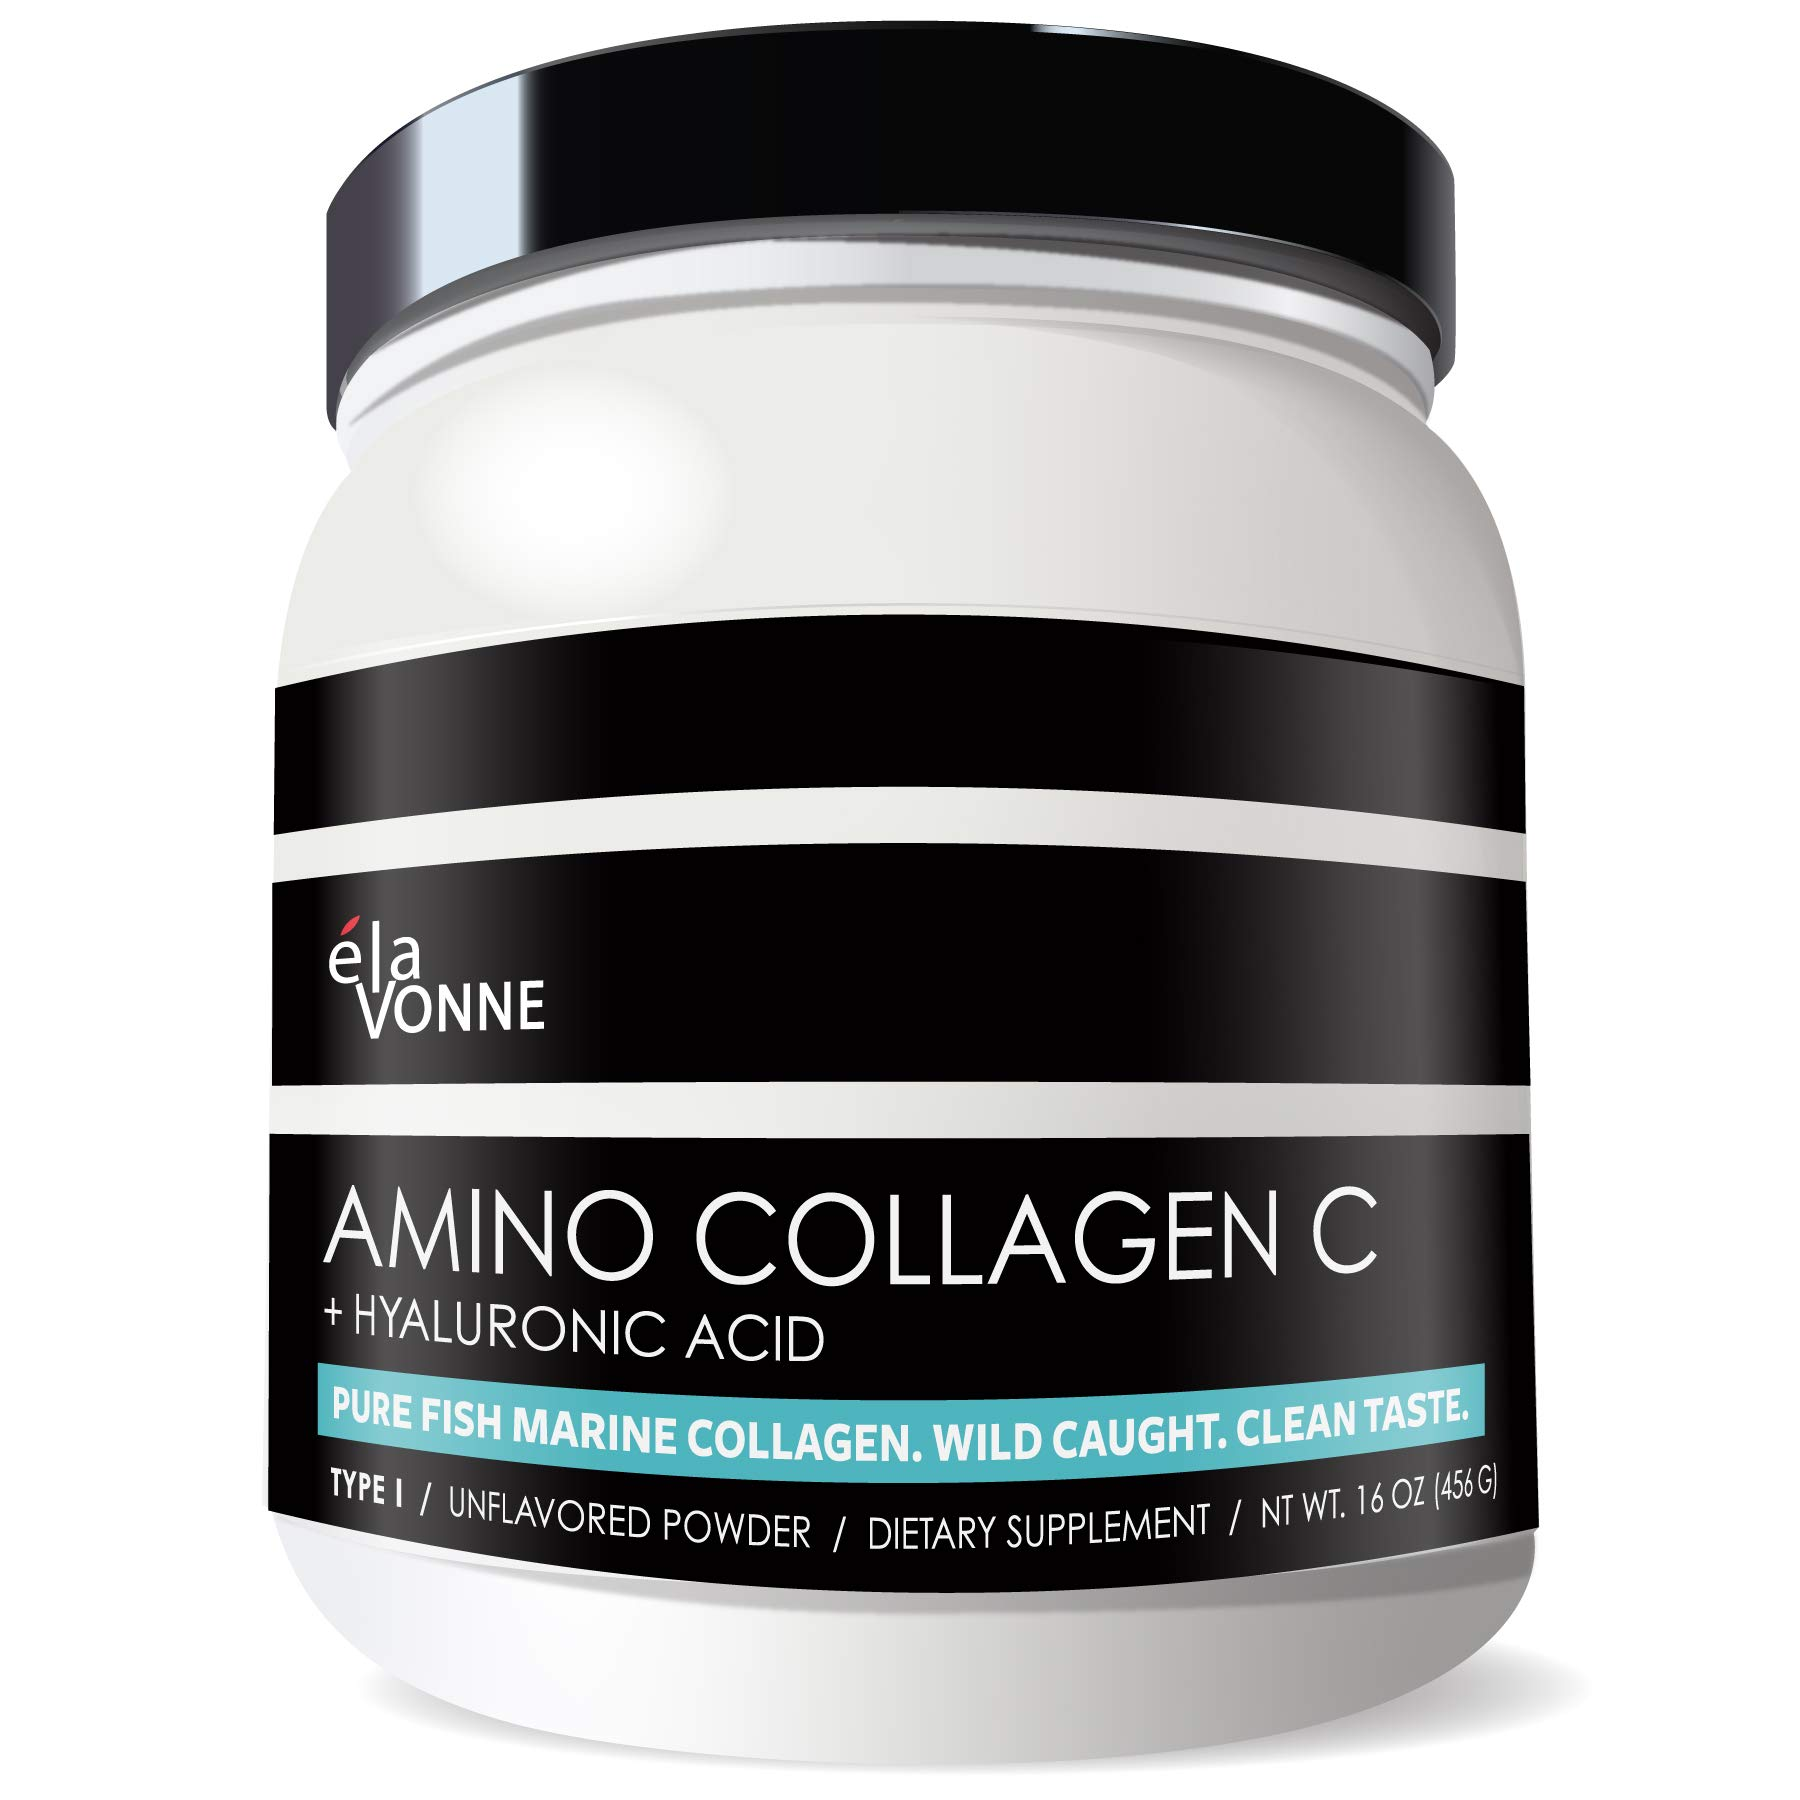 Amino Collagen C with Hyaluronic Acid (60 Servings _ 16oz _456g) - Non-GMO Marine Collagen Peptides - Hydrolyzed Powder - Unflavored - No Sugar - for Firm Skin, Hydration, Healthy Joints and Gut.